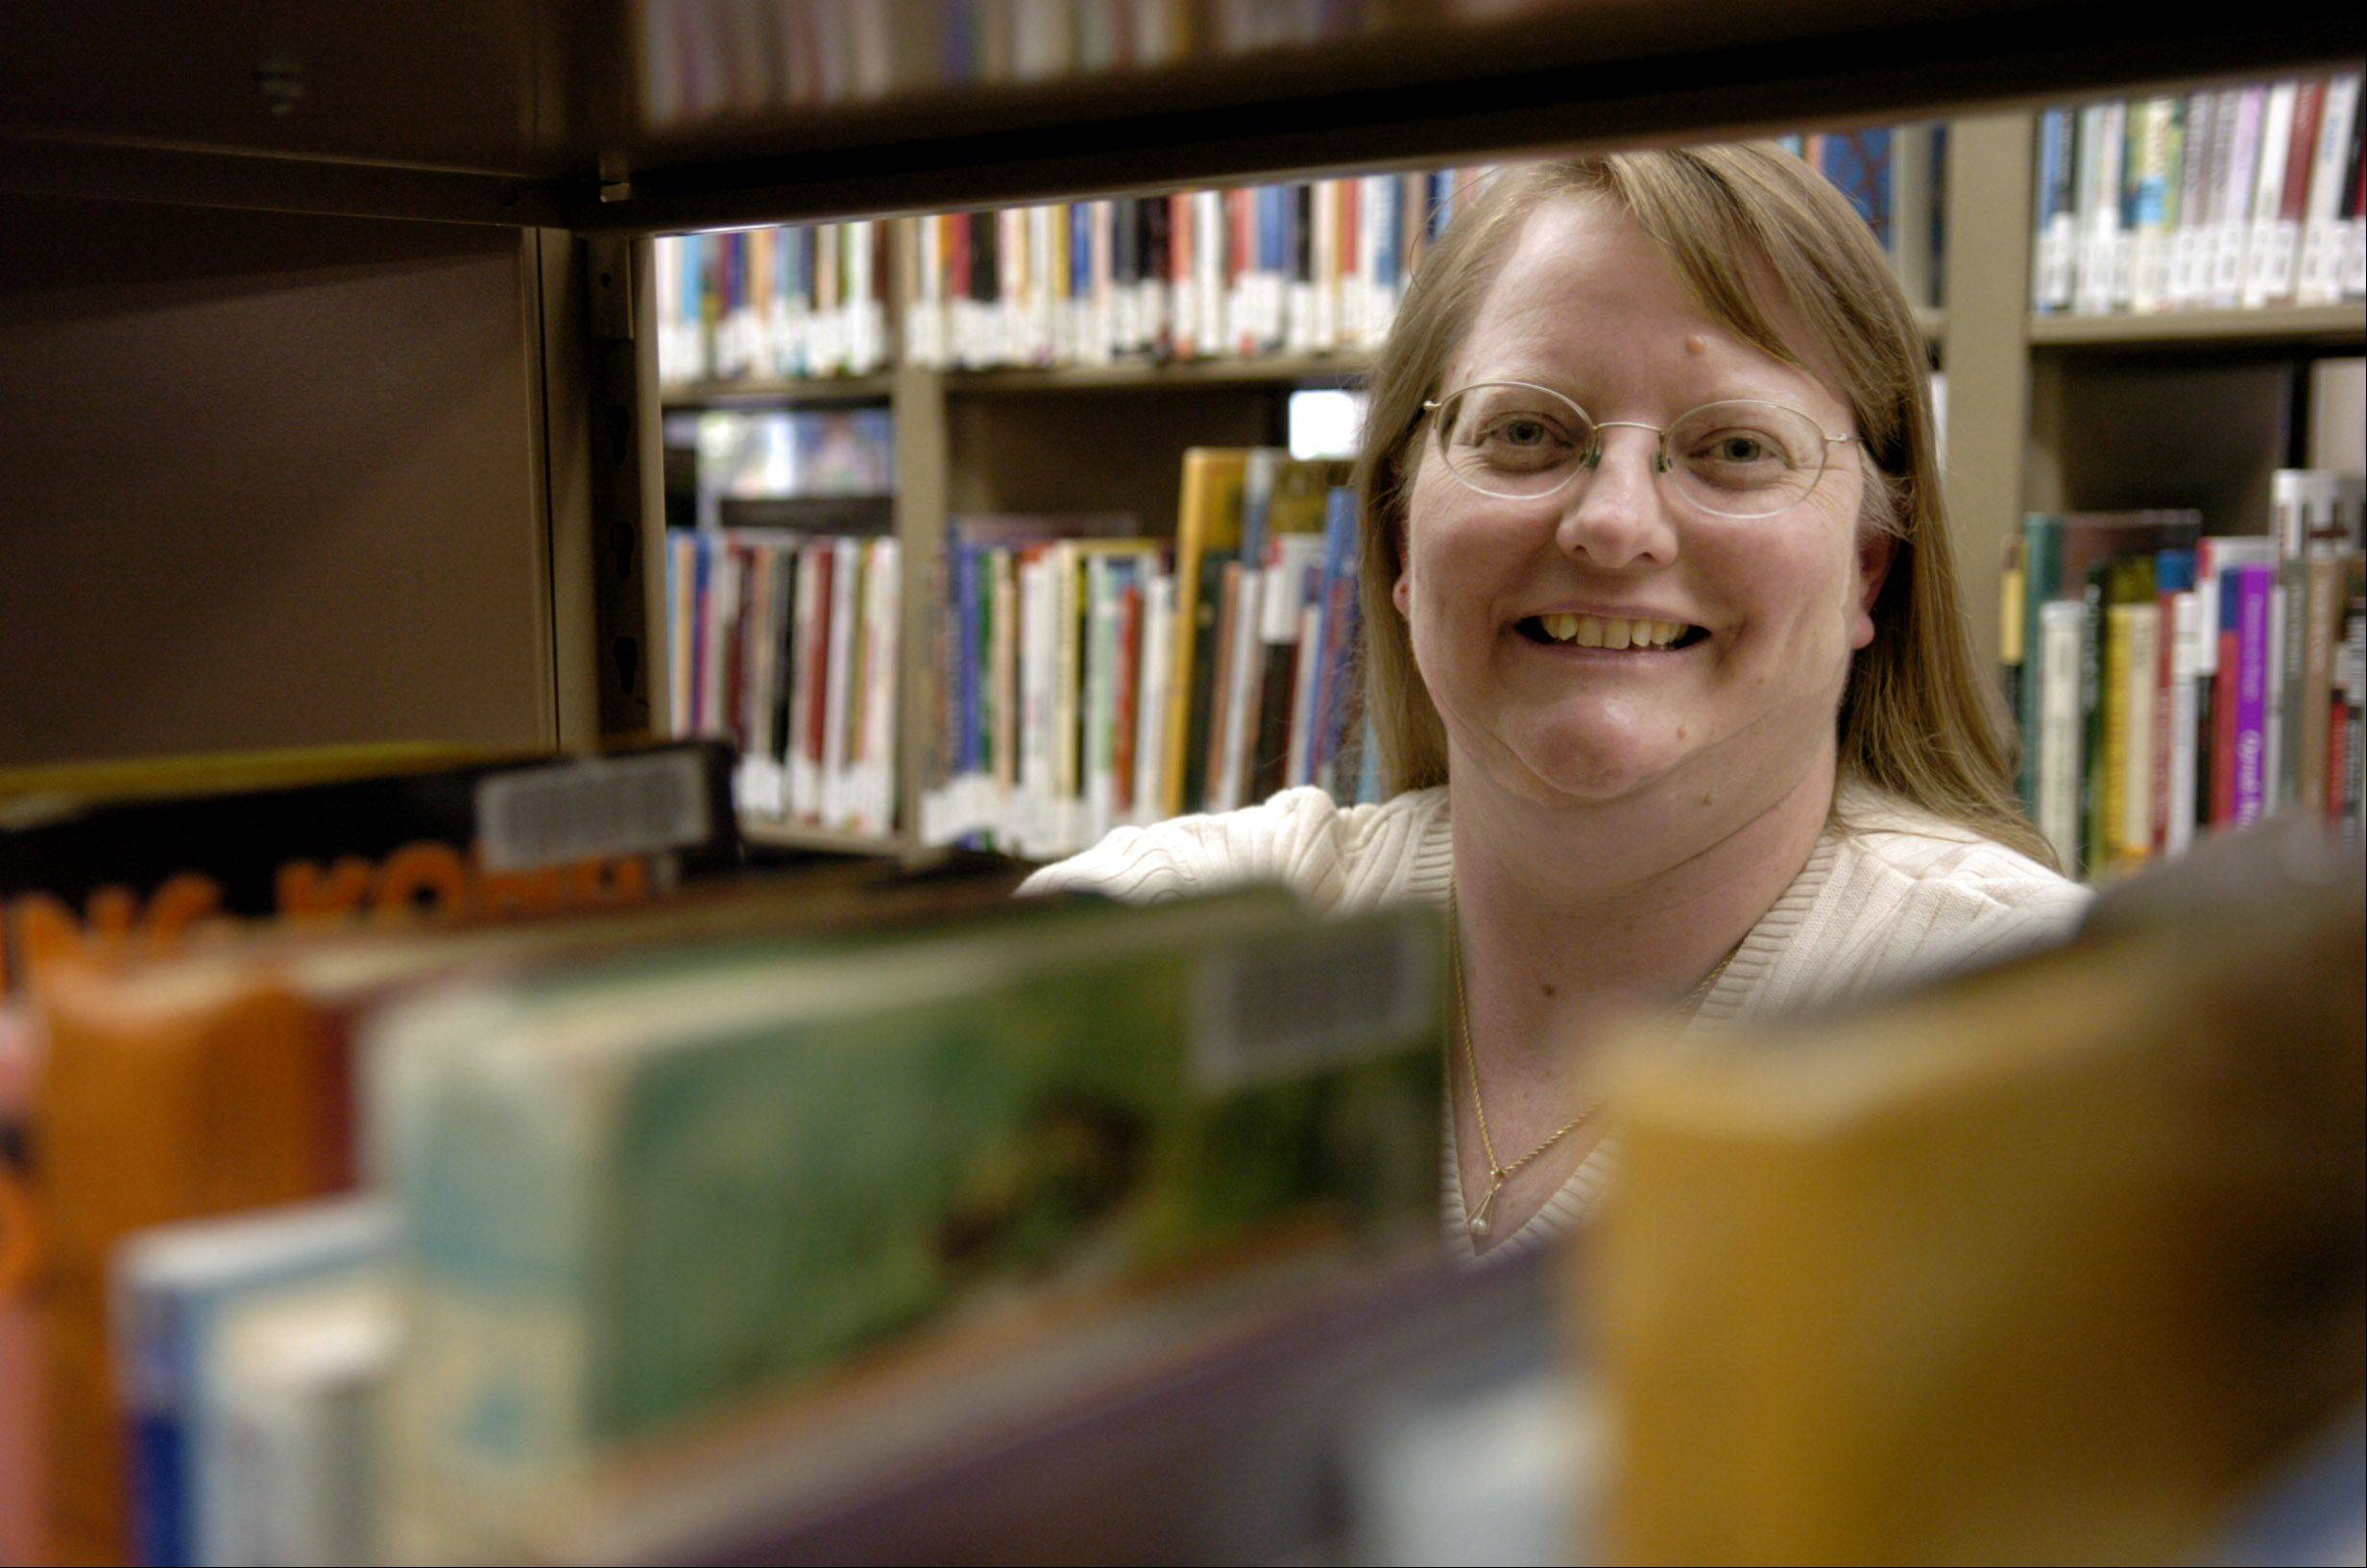 A rally is planned for 6 p.m. today to protest the firing of Sugar Grove Library Director Beverly Holmes Hughes.